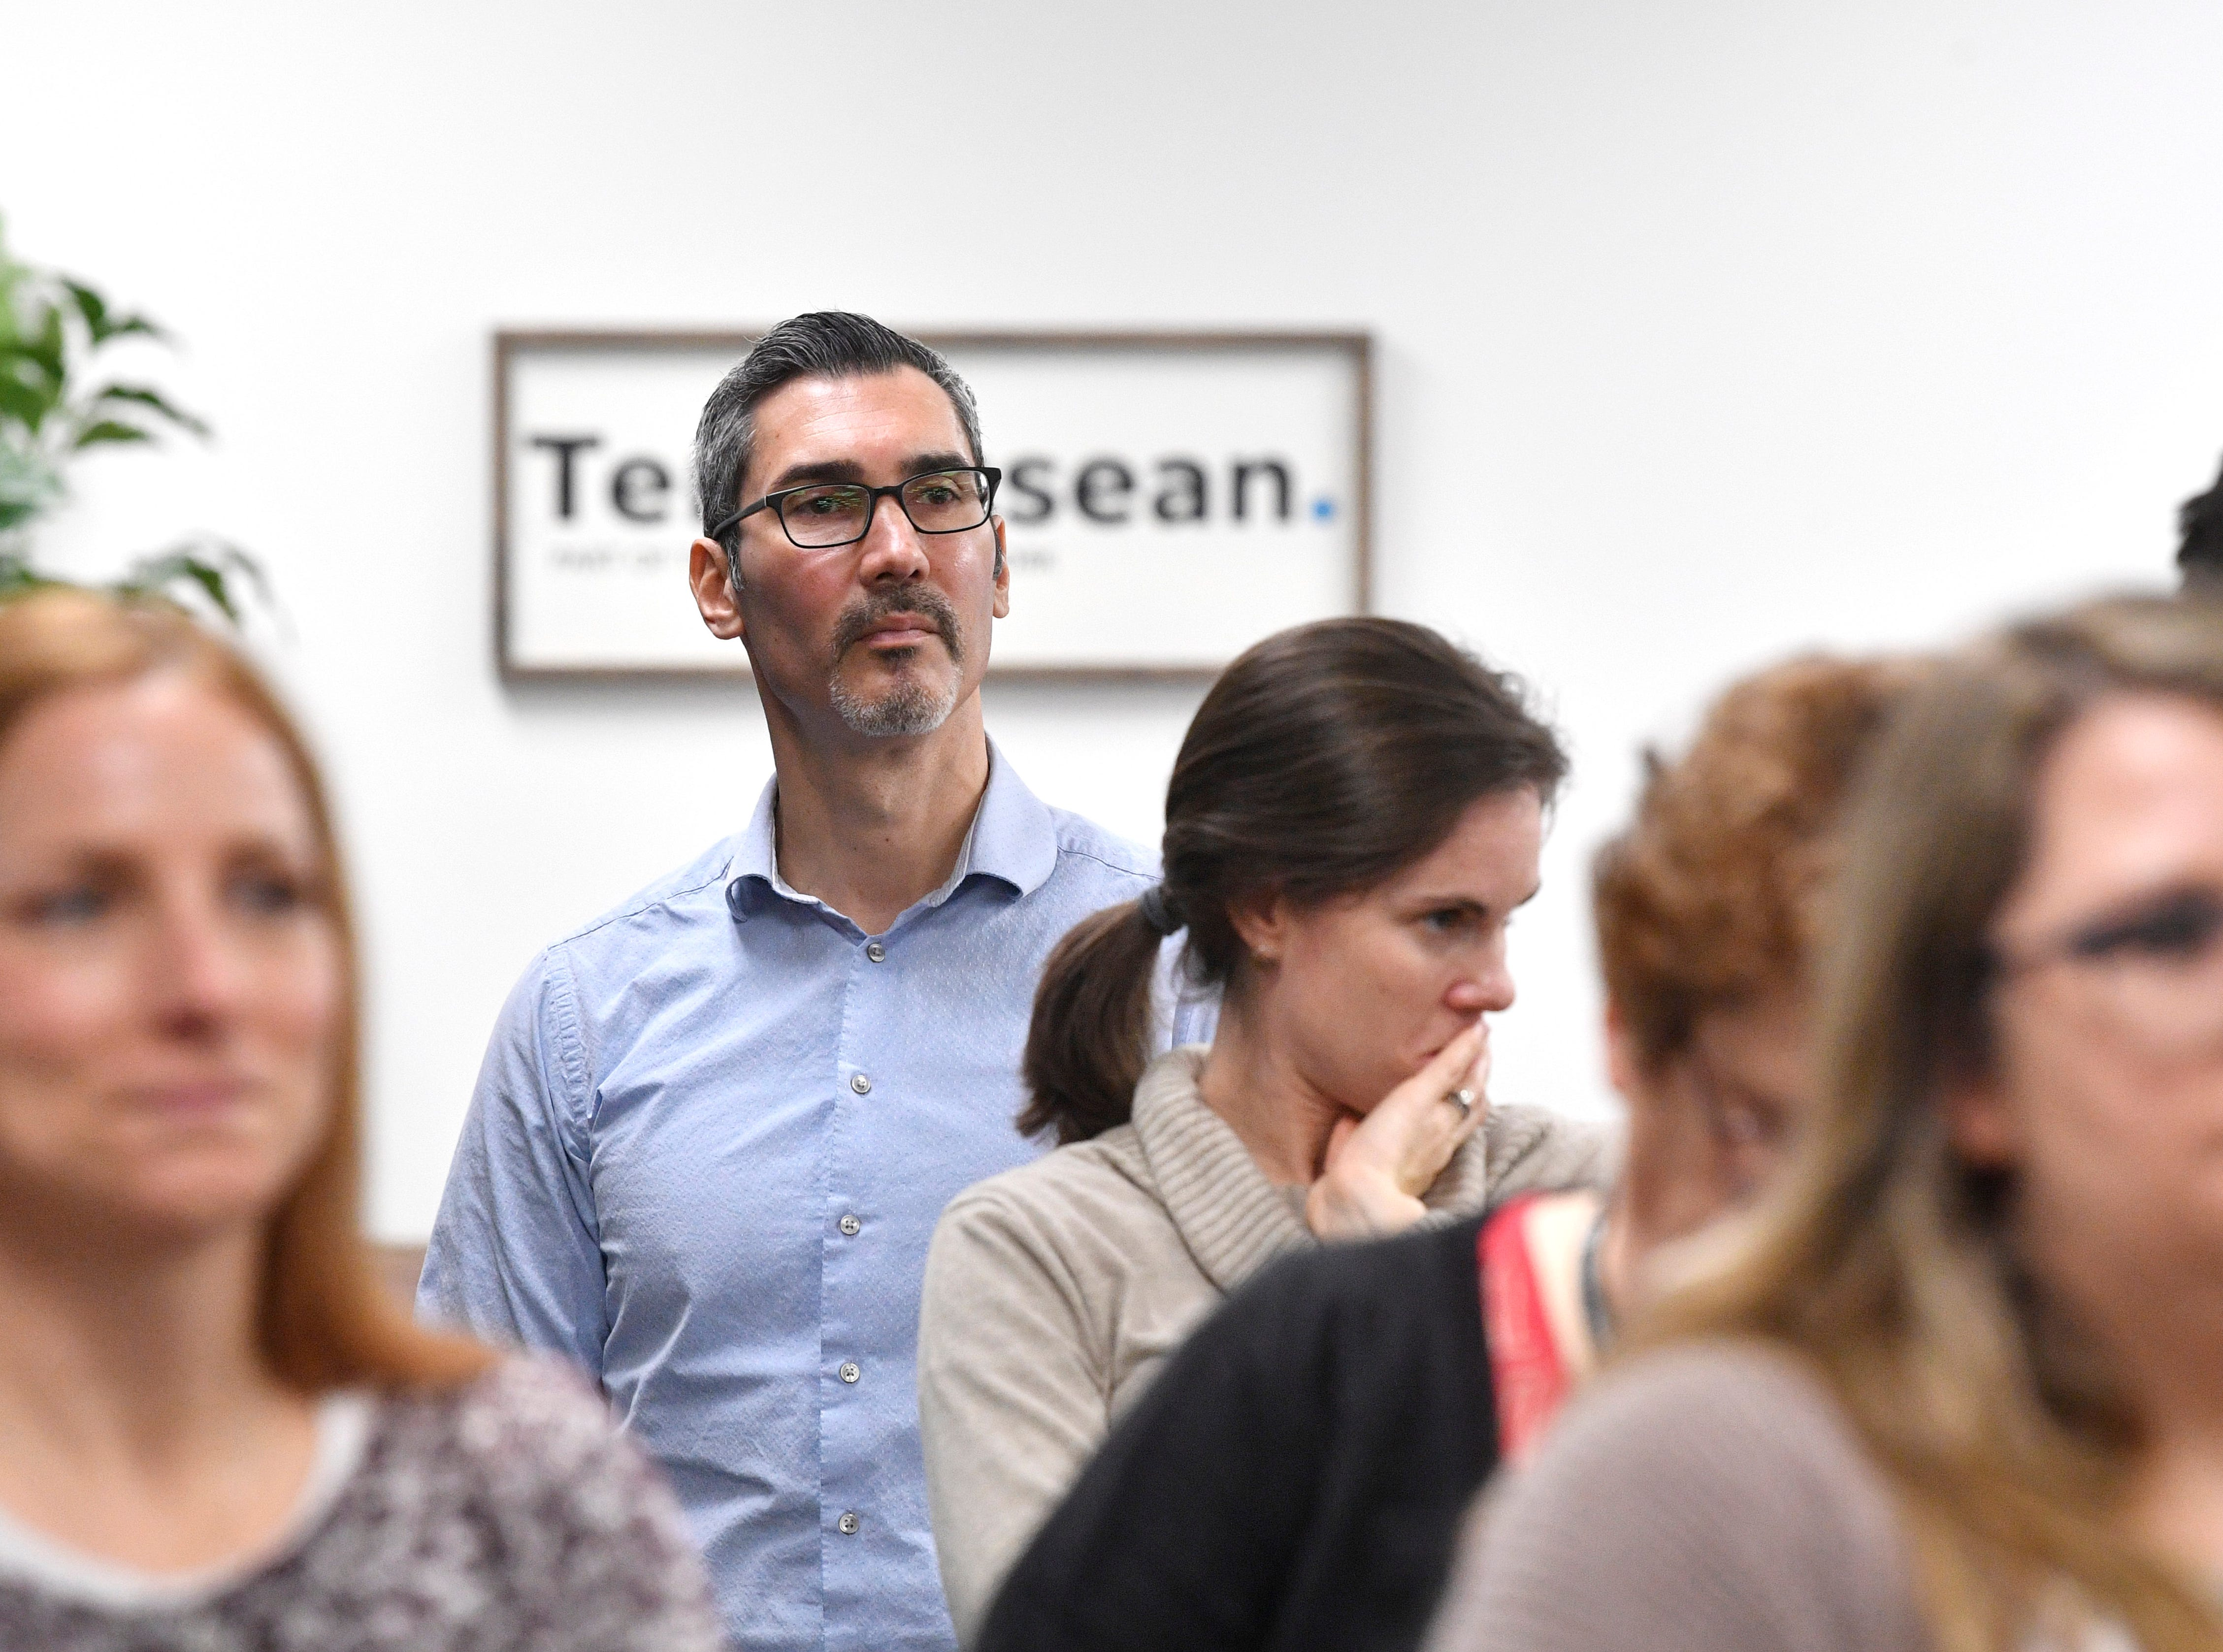 Engagement Editor David Plazas listens with the staff during a retirement party in The Tennessean newsroom Wednesday, Jan. 2, 2019, in Nashville.